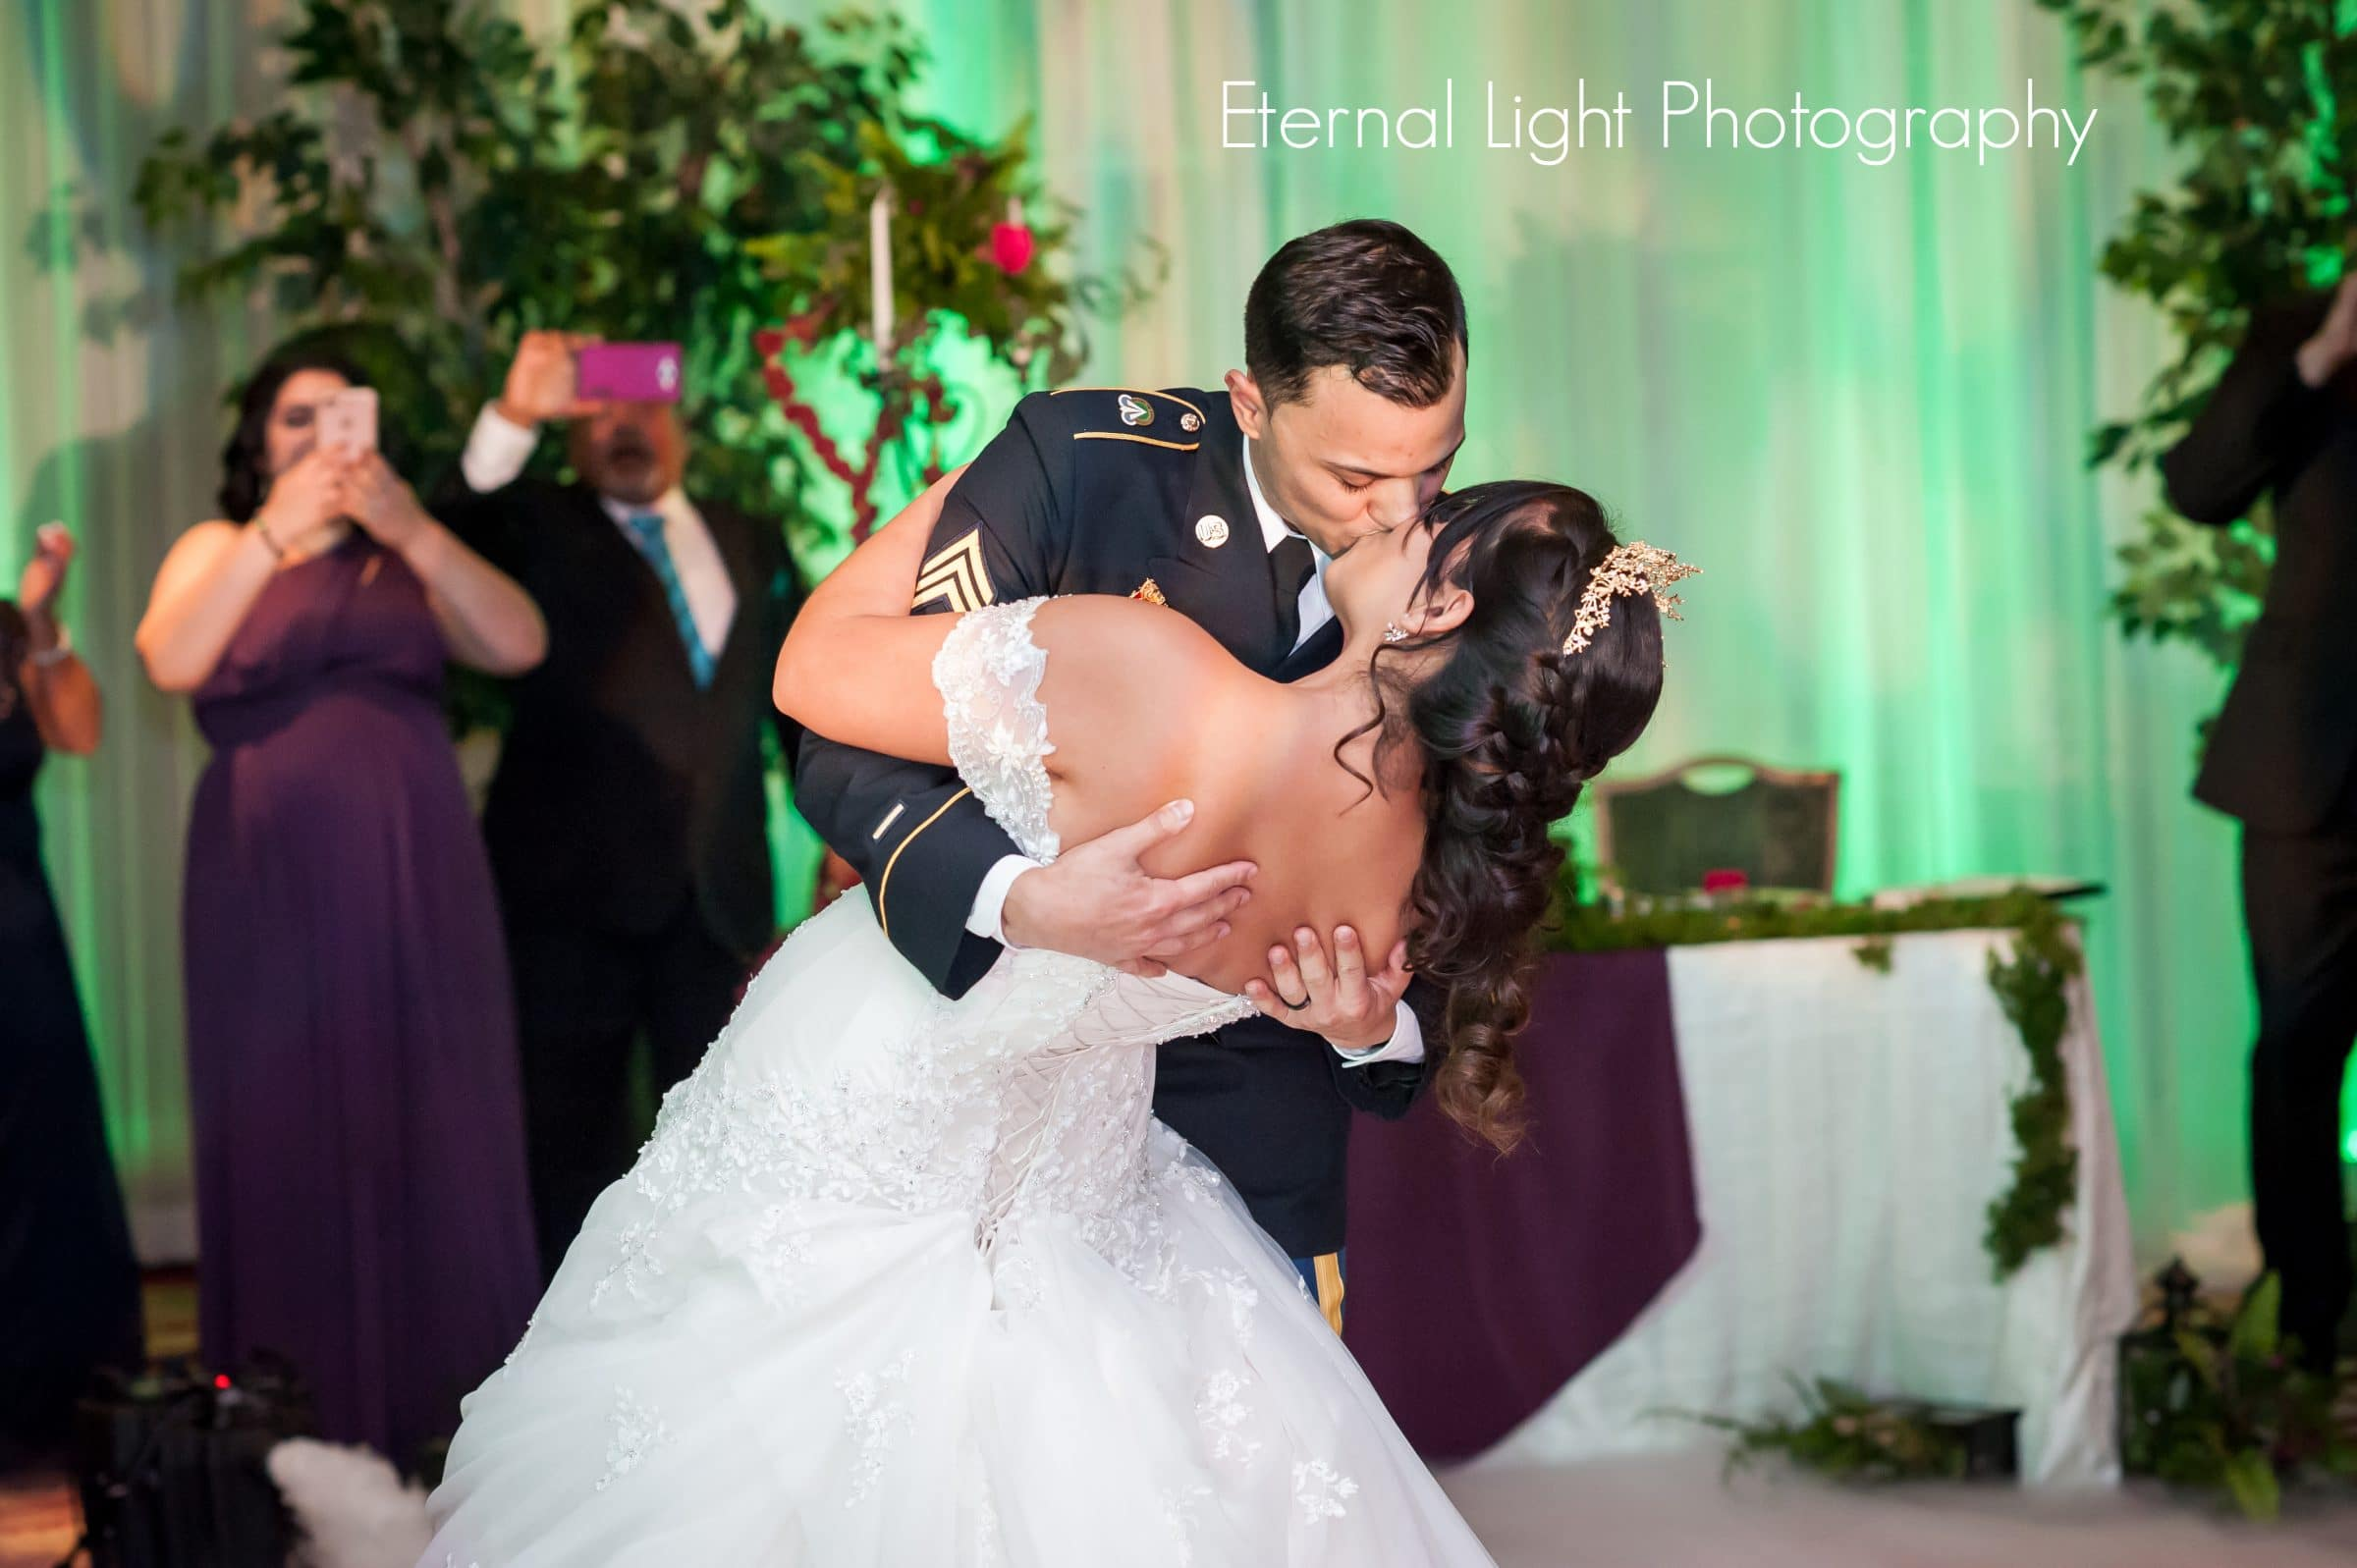 Military groom dipping and kissing bride during first dance